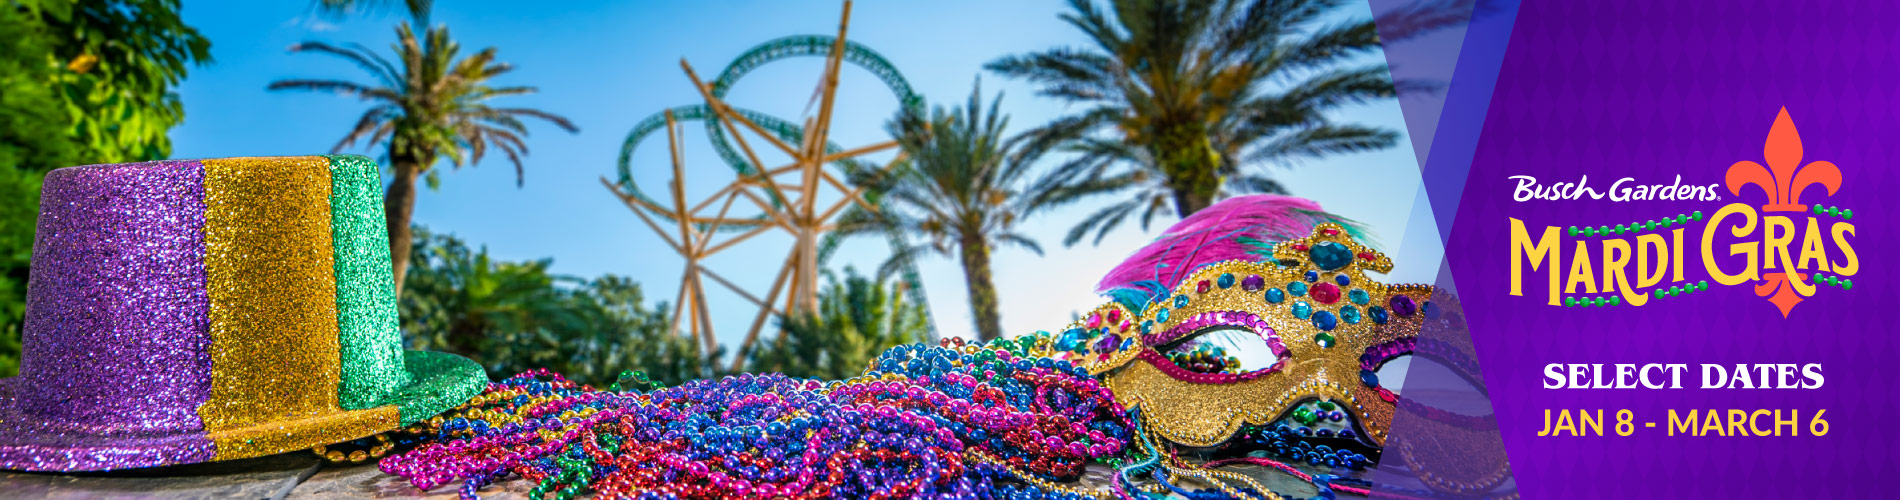 Busch Gardens Mardi Gras: Select Dates from Jan. 16 - Feb. 16